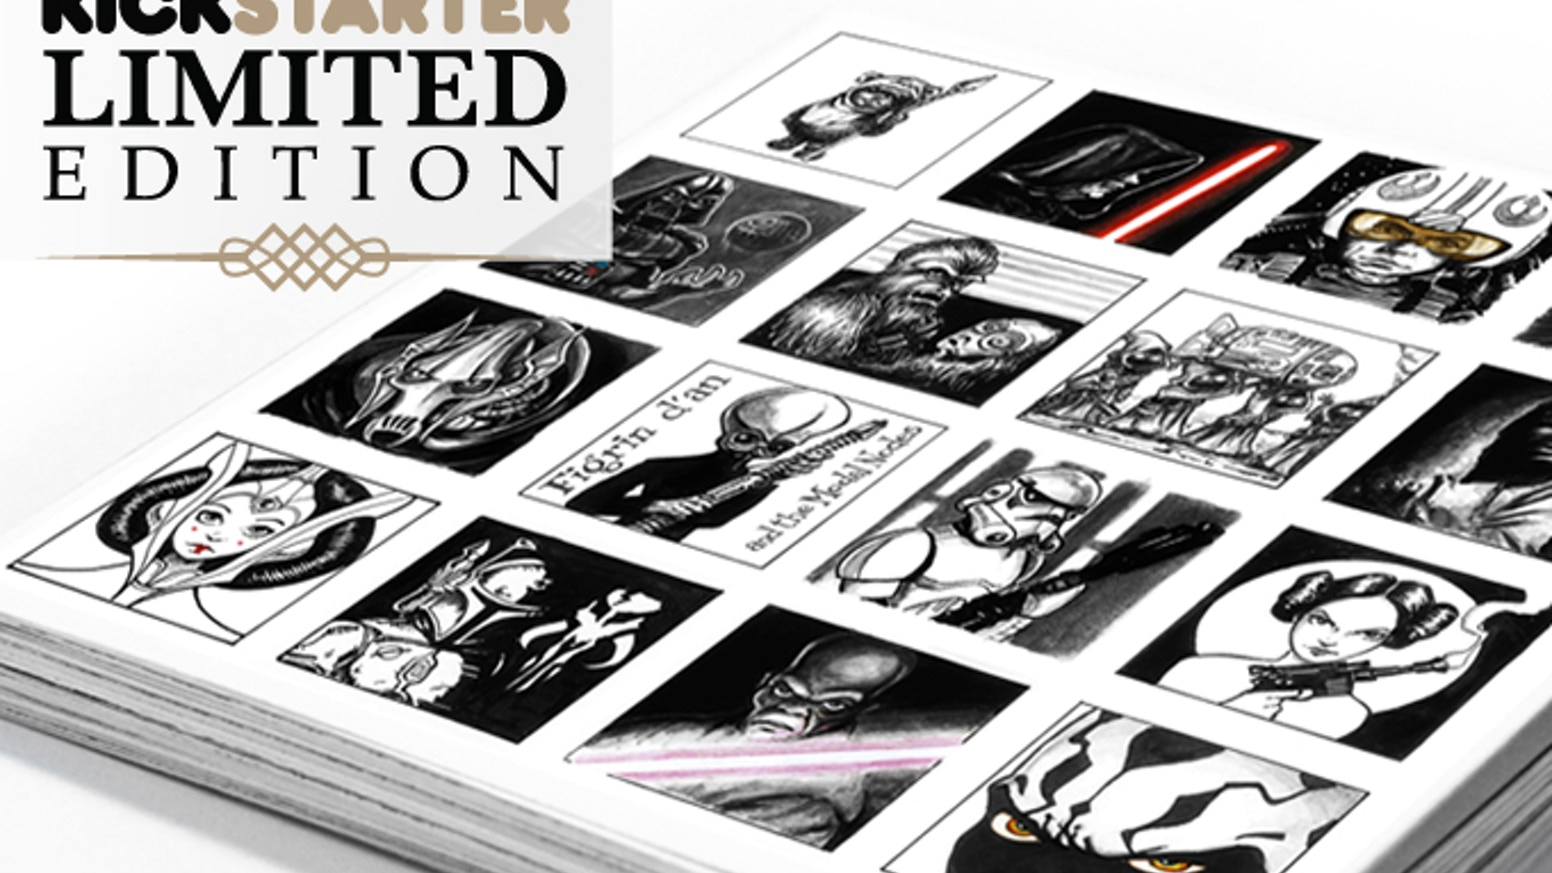 A tribute art book for Sci-fi lovers - Kickstarter Limited Edition. May the Ink be with you!